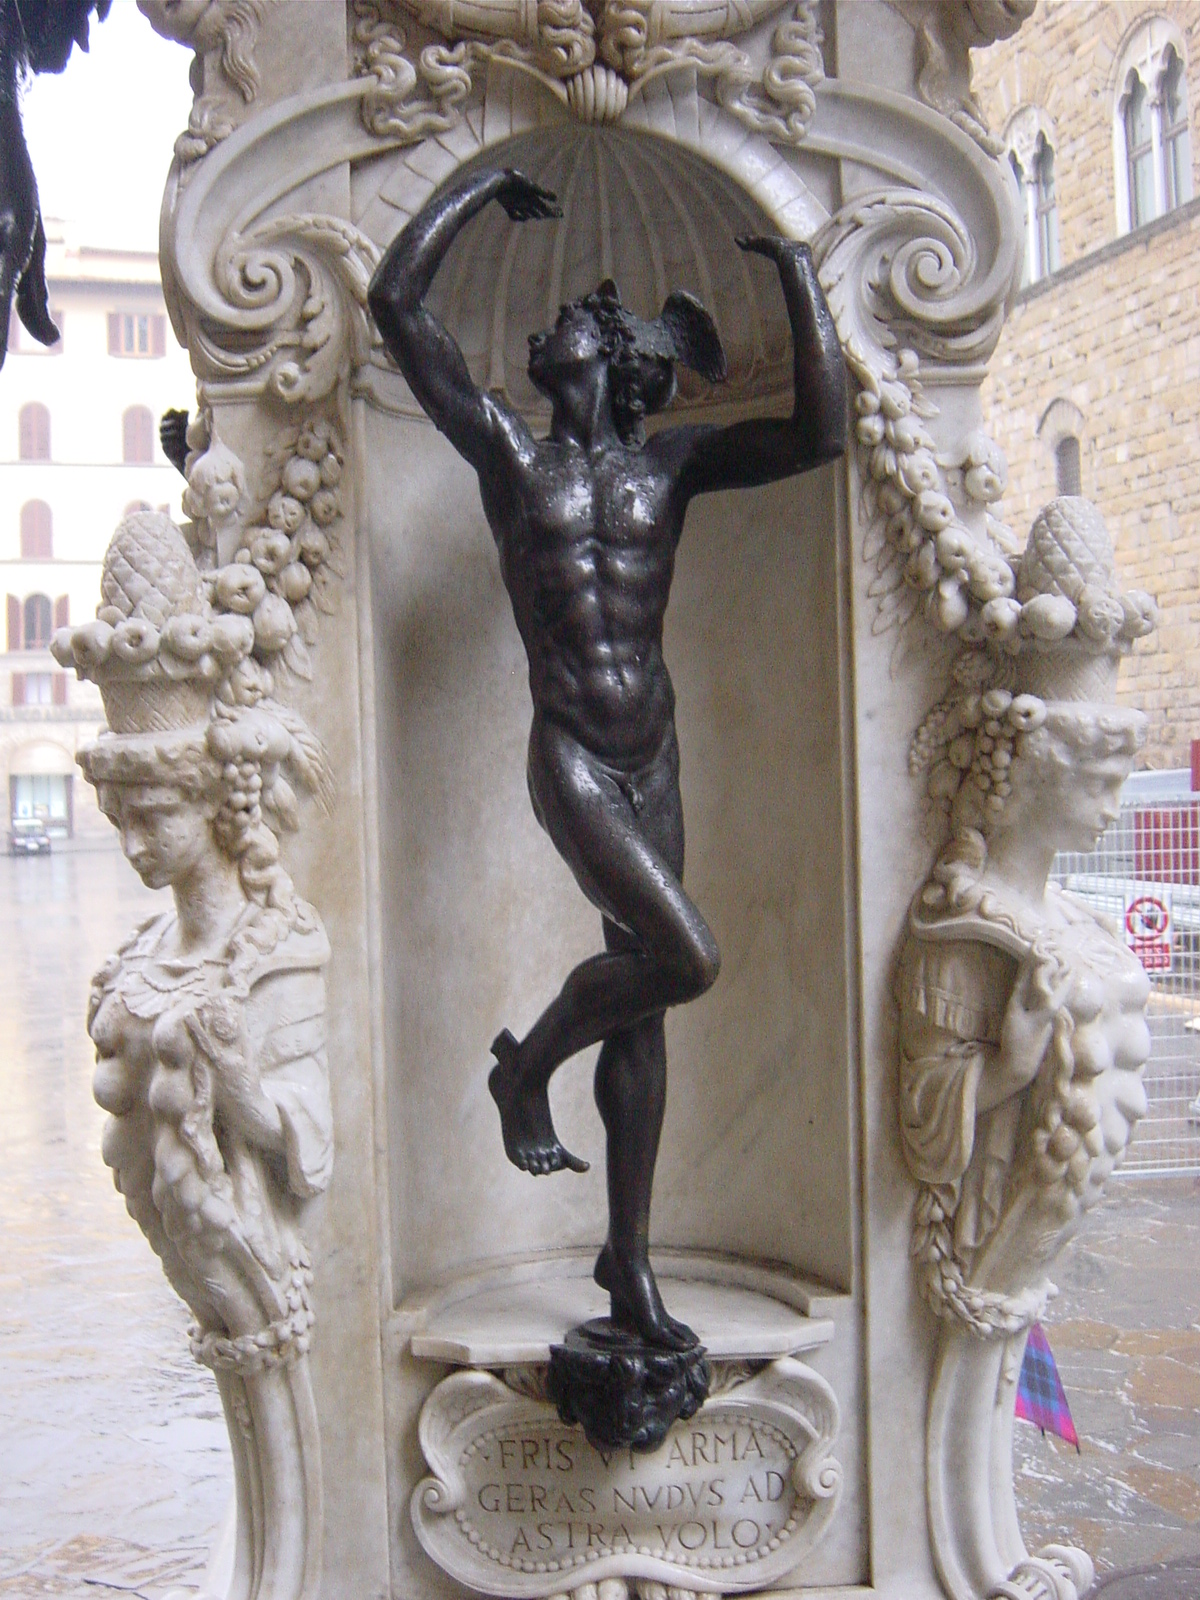 a history of the creation of perseus by benvenuto cellini Perseus essay examples  a history of the creation of perseus by benvenuto cellini 1,525 words 3 pages abandoned at birth perseus becomes a symbol of ethical.